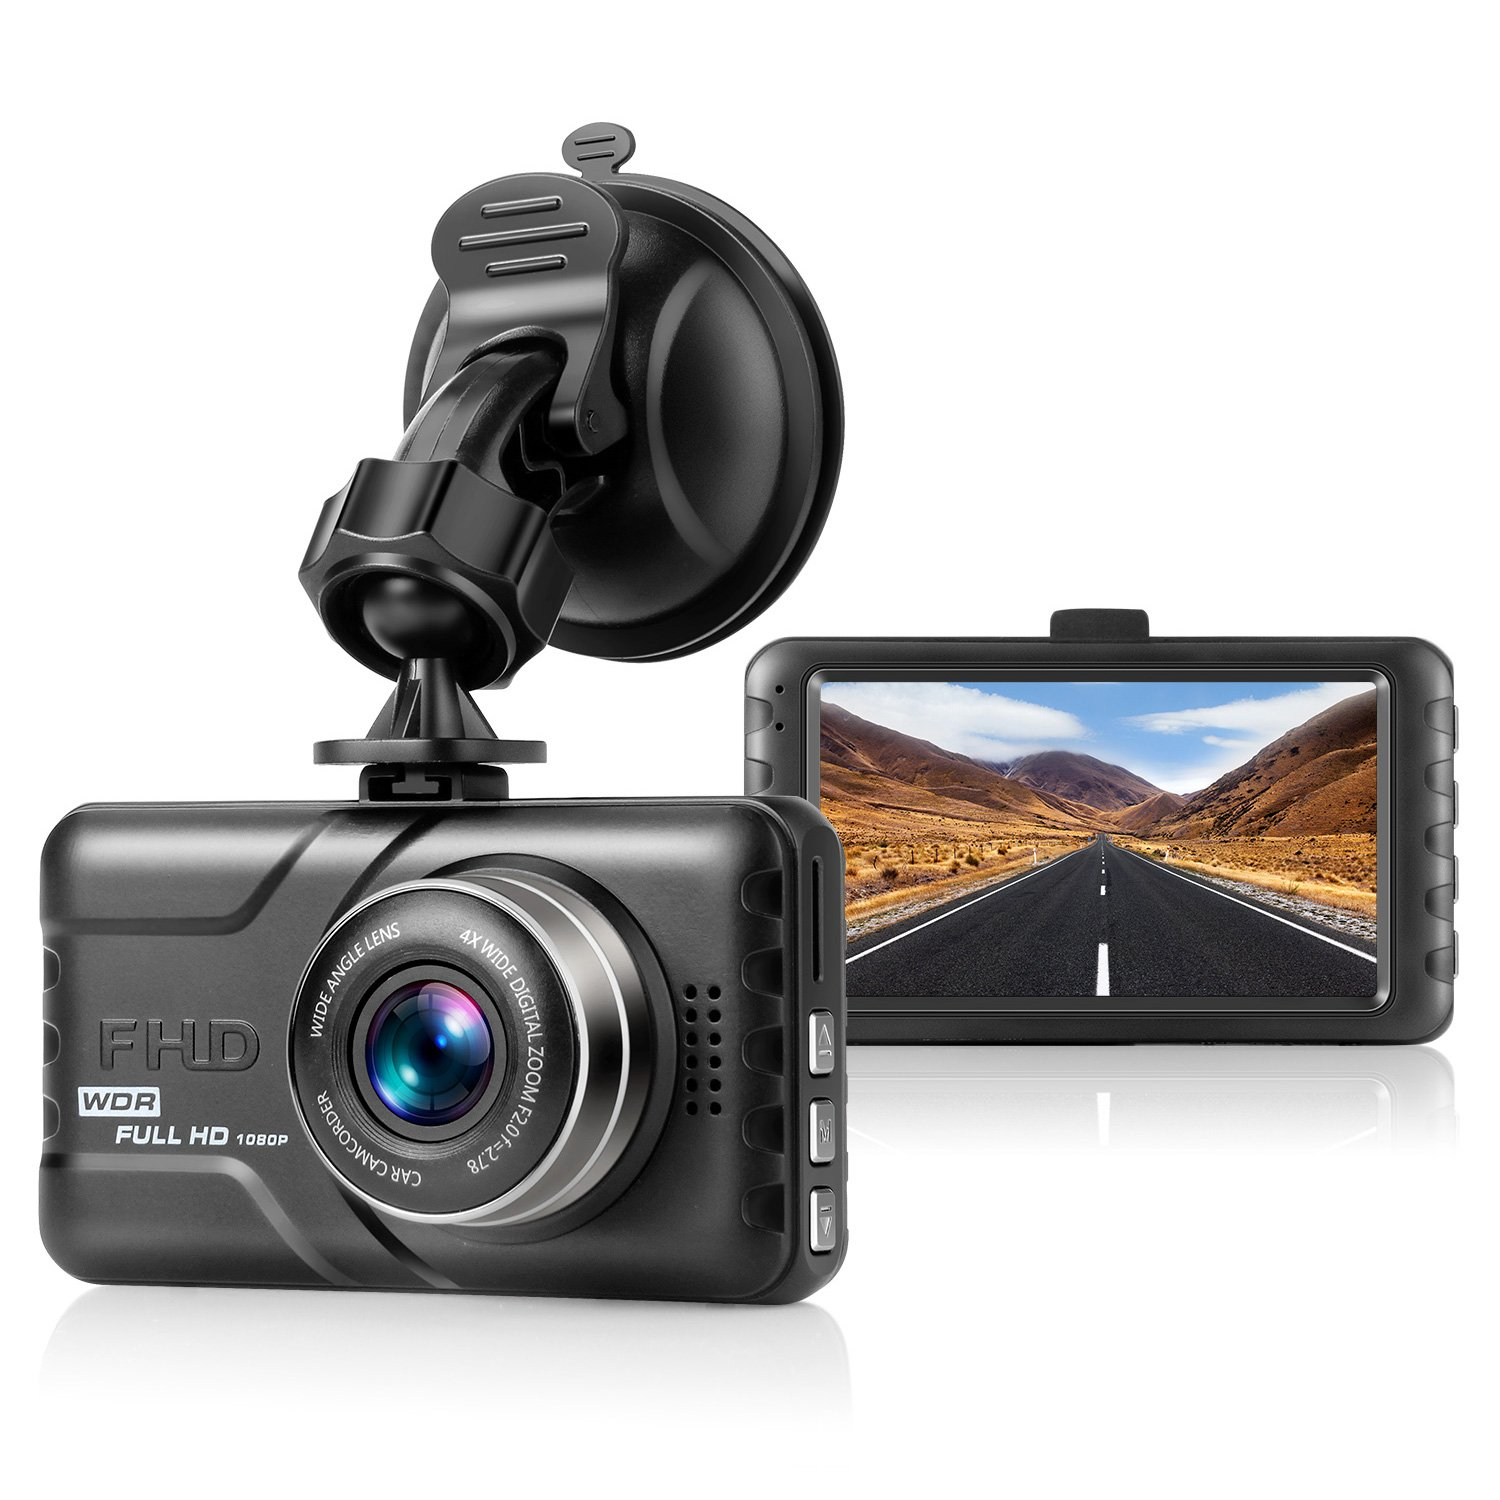 A great compact dashcam which does the job